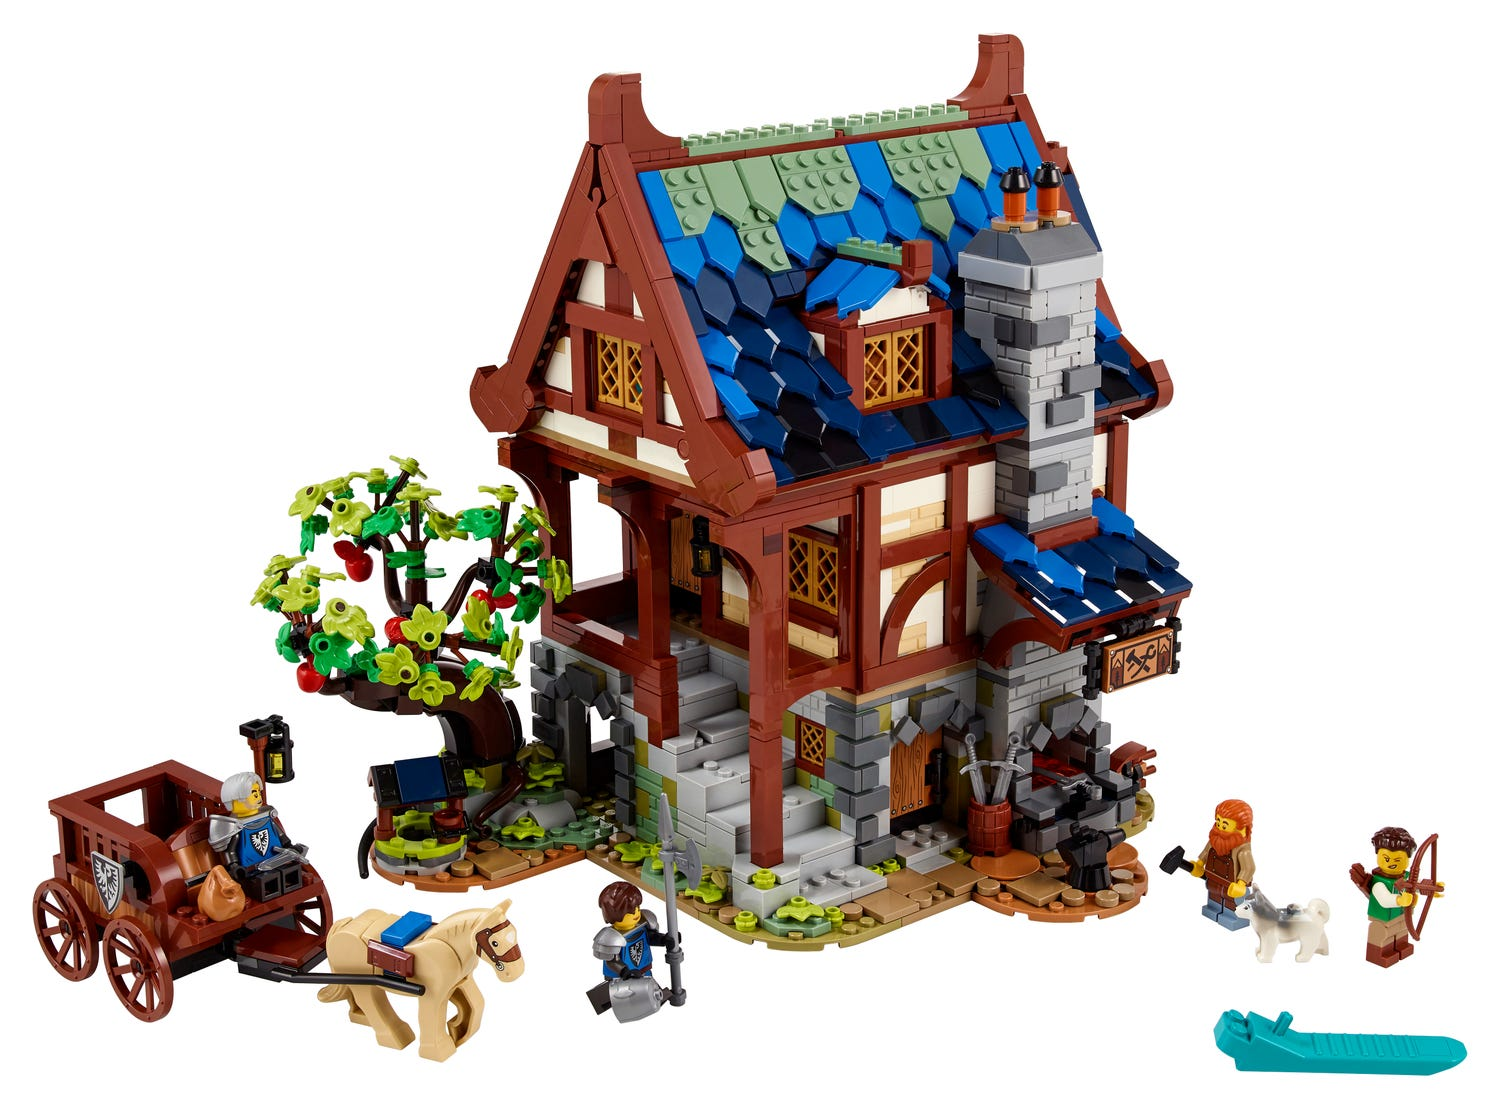 Lego announce The Blacksmith is making a comeback!